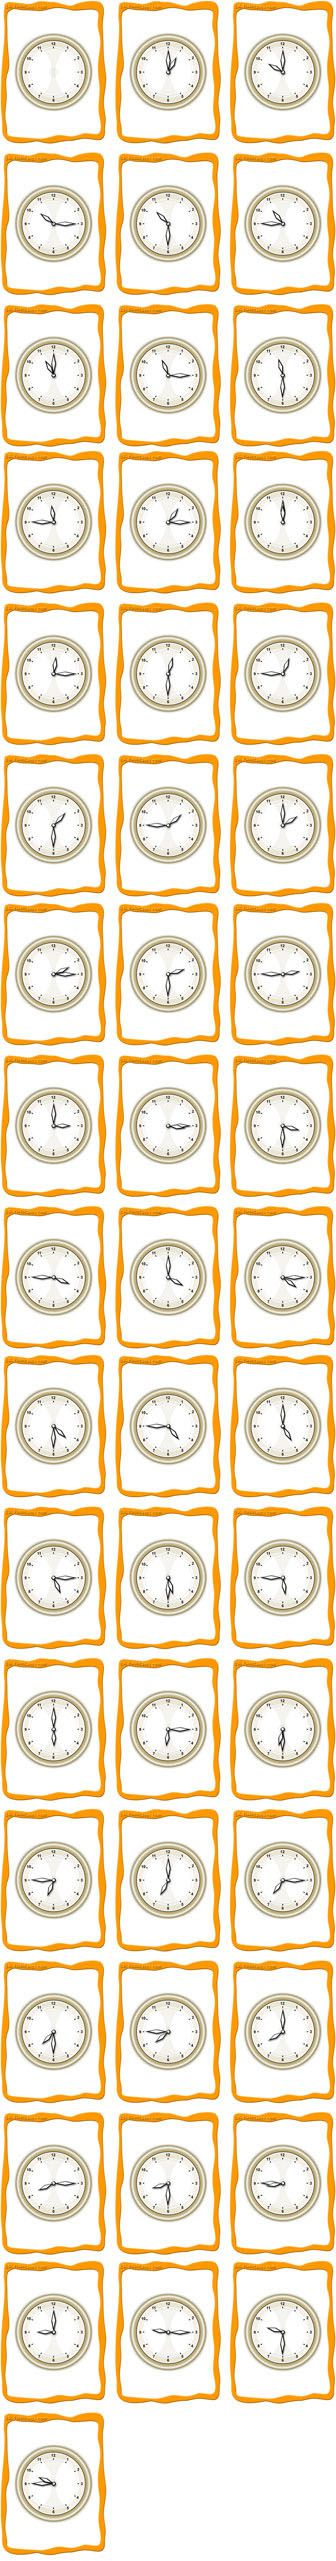 worksheet Time Flashcards flashcards for telling time requires a download of different stop drawing the and start teaching it this set includes an analog picture every 1